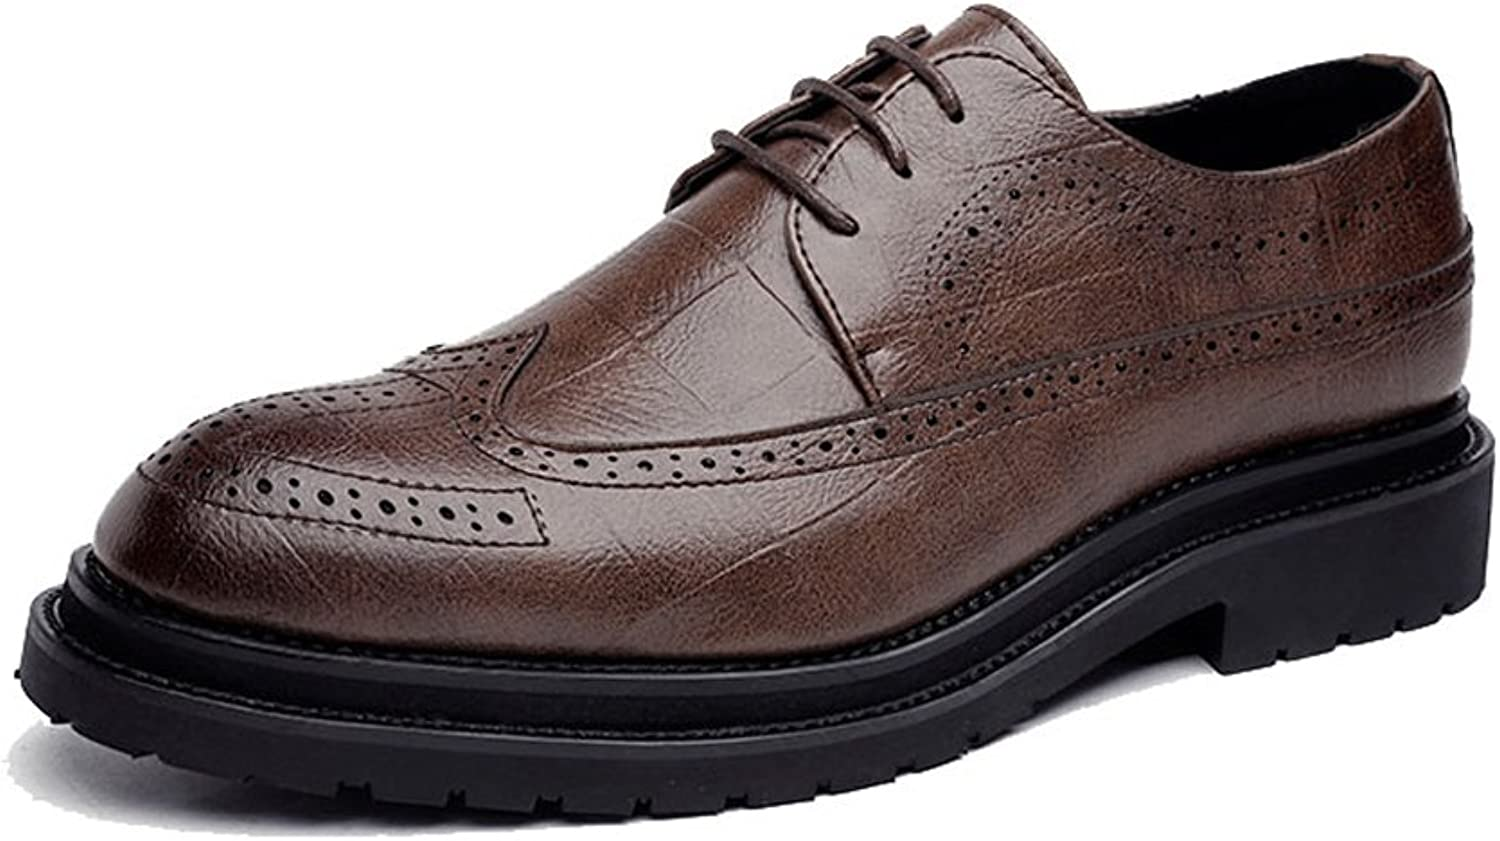 ZLQ Men's PU Leather shoes Classic Lace Up Breathable Square Texture Formal Business Lined Oxfords Breathable shoes